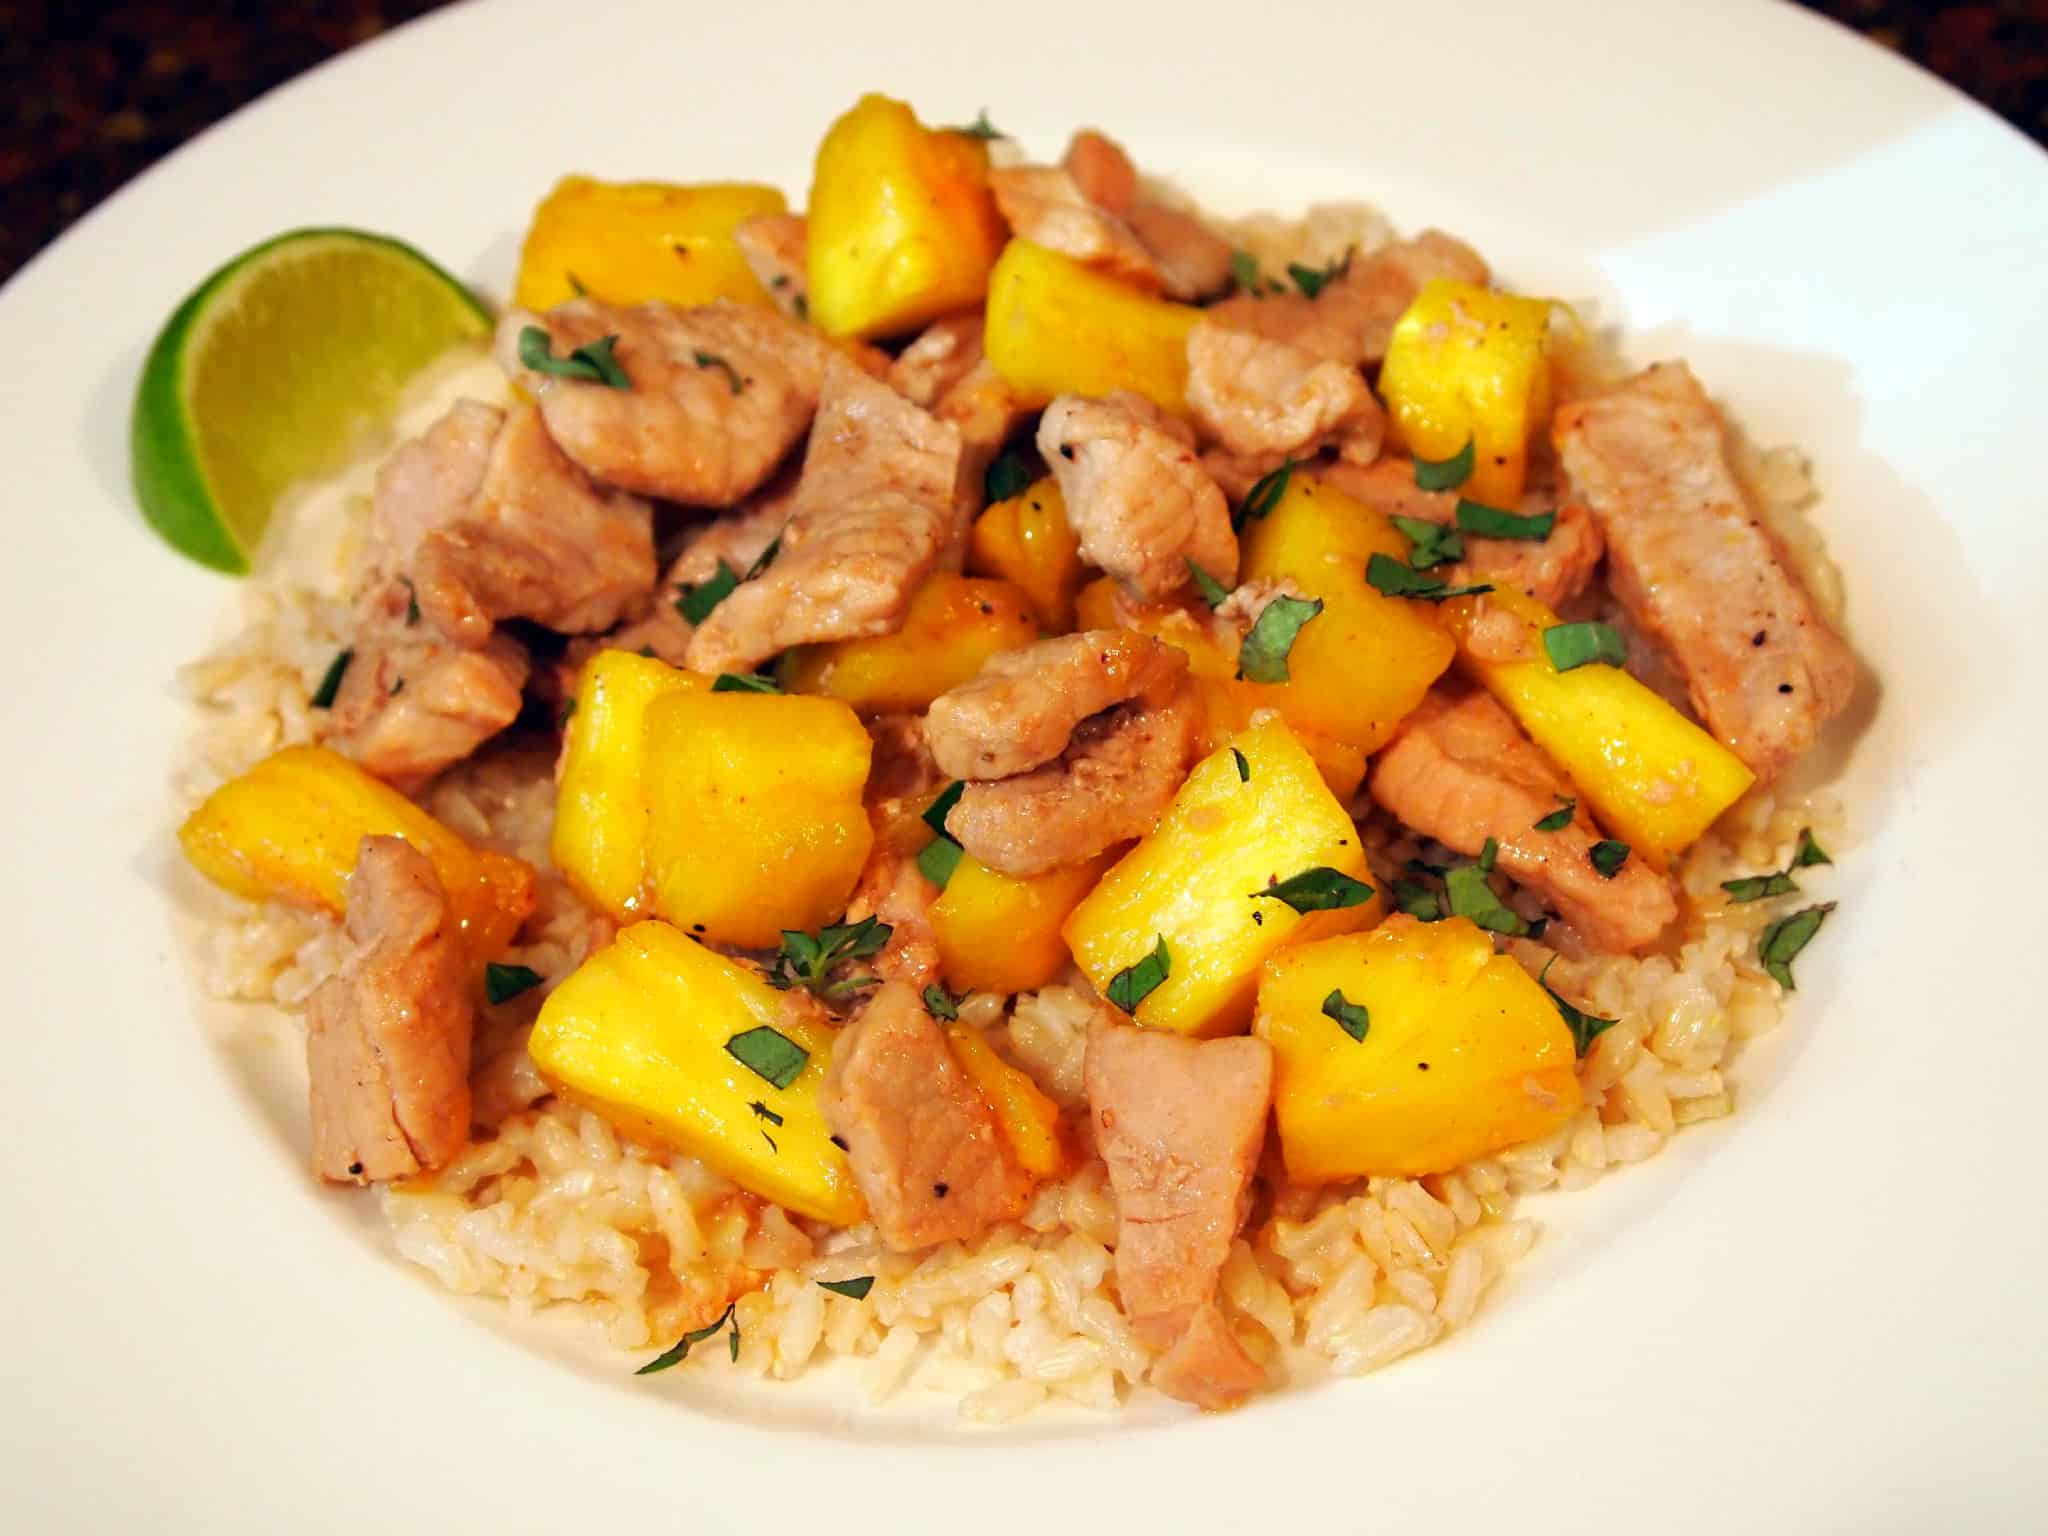 pineapple pork stir fry on a plate with rice and lime